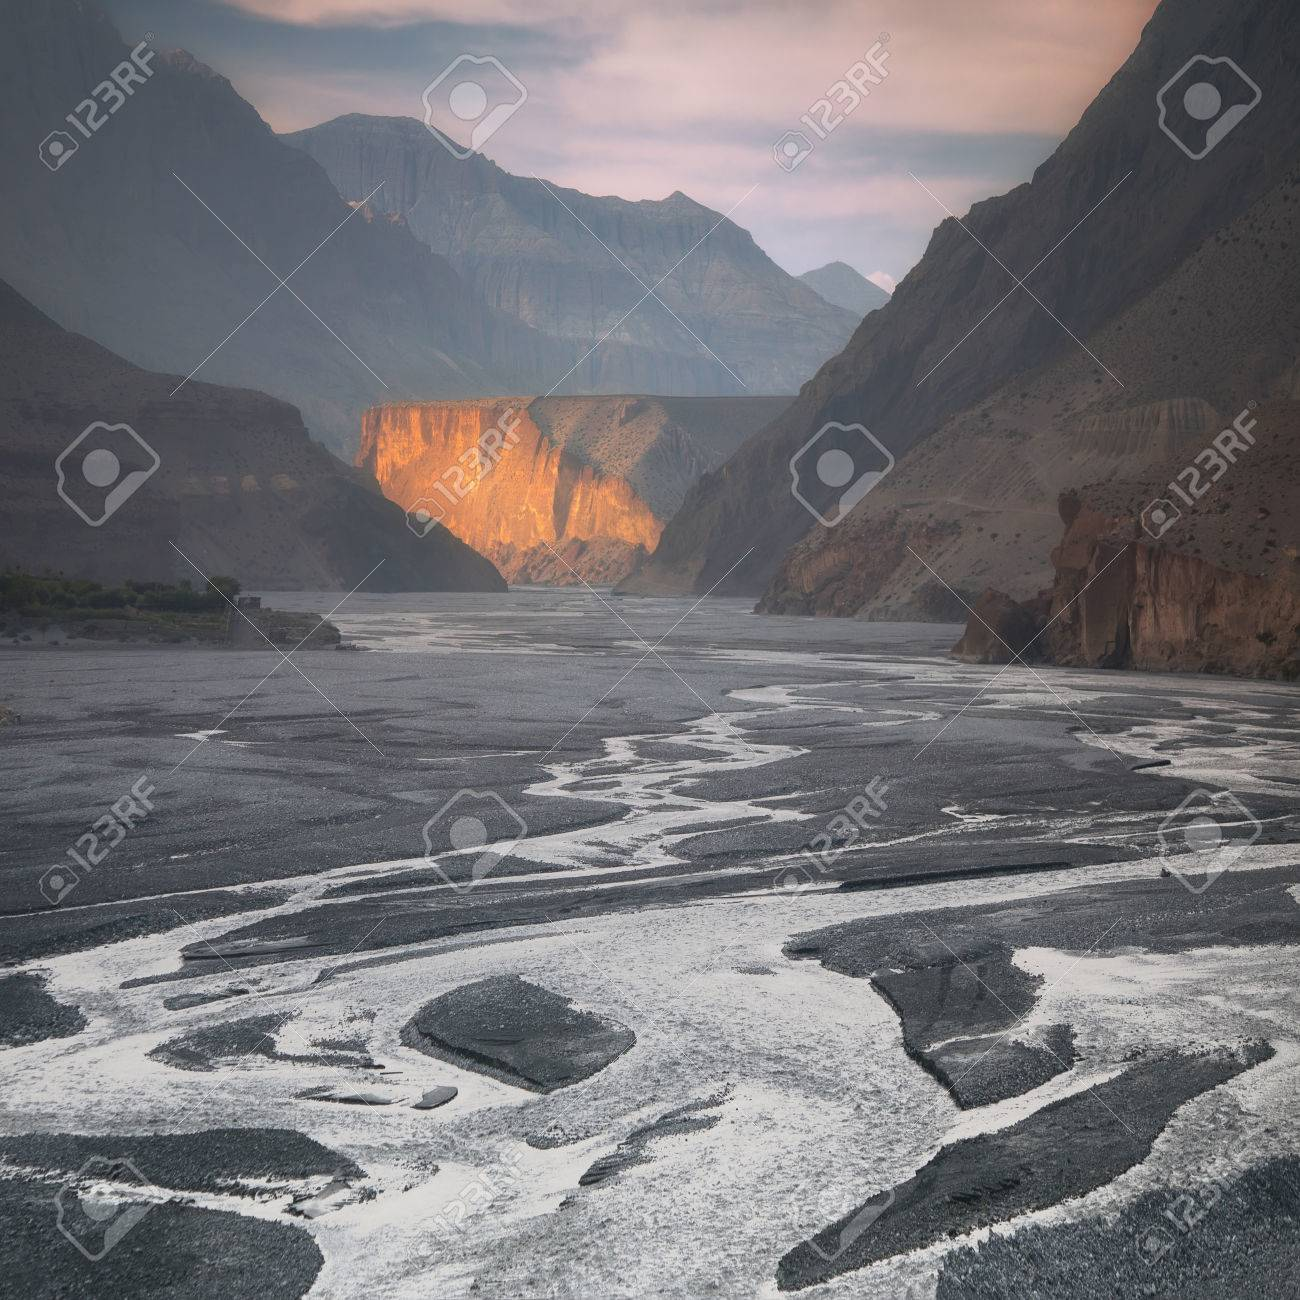 Nepal, Upper Mustang, the last sunrays in the gorge of Kali Gandaki river, the deepest gorge in the world - 82857584